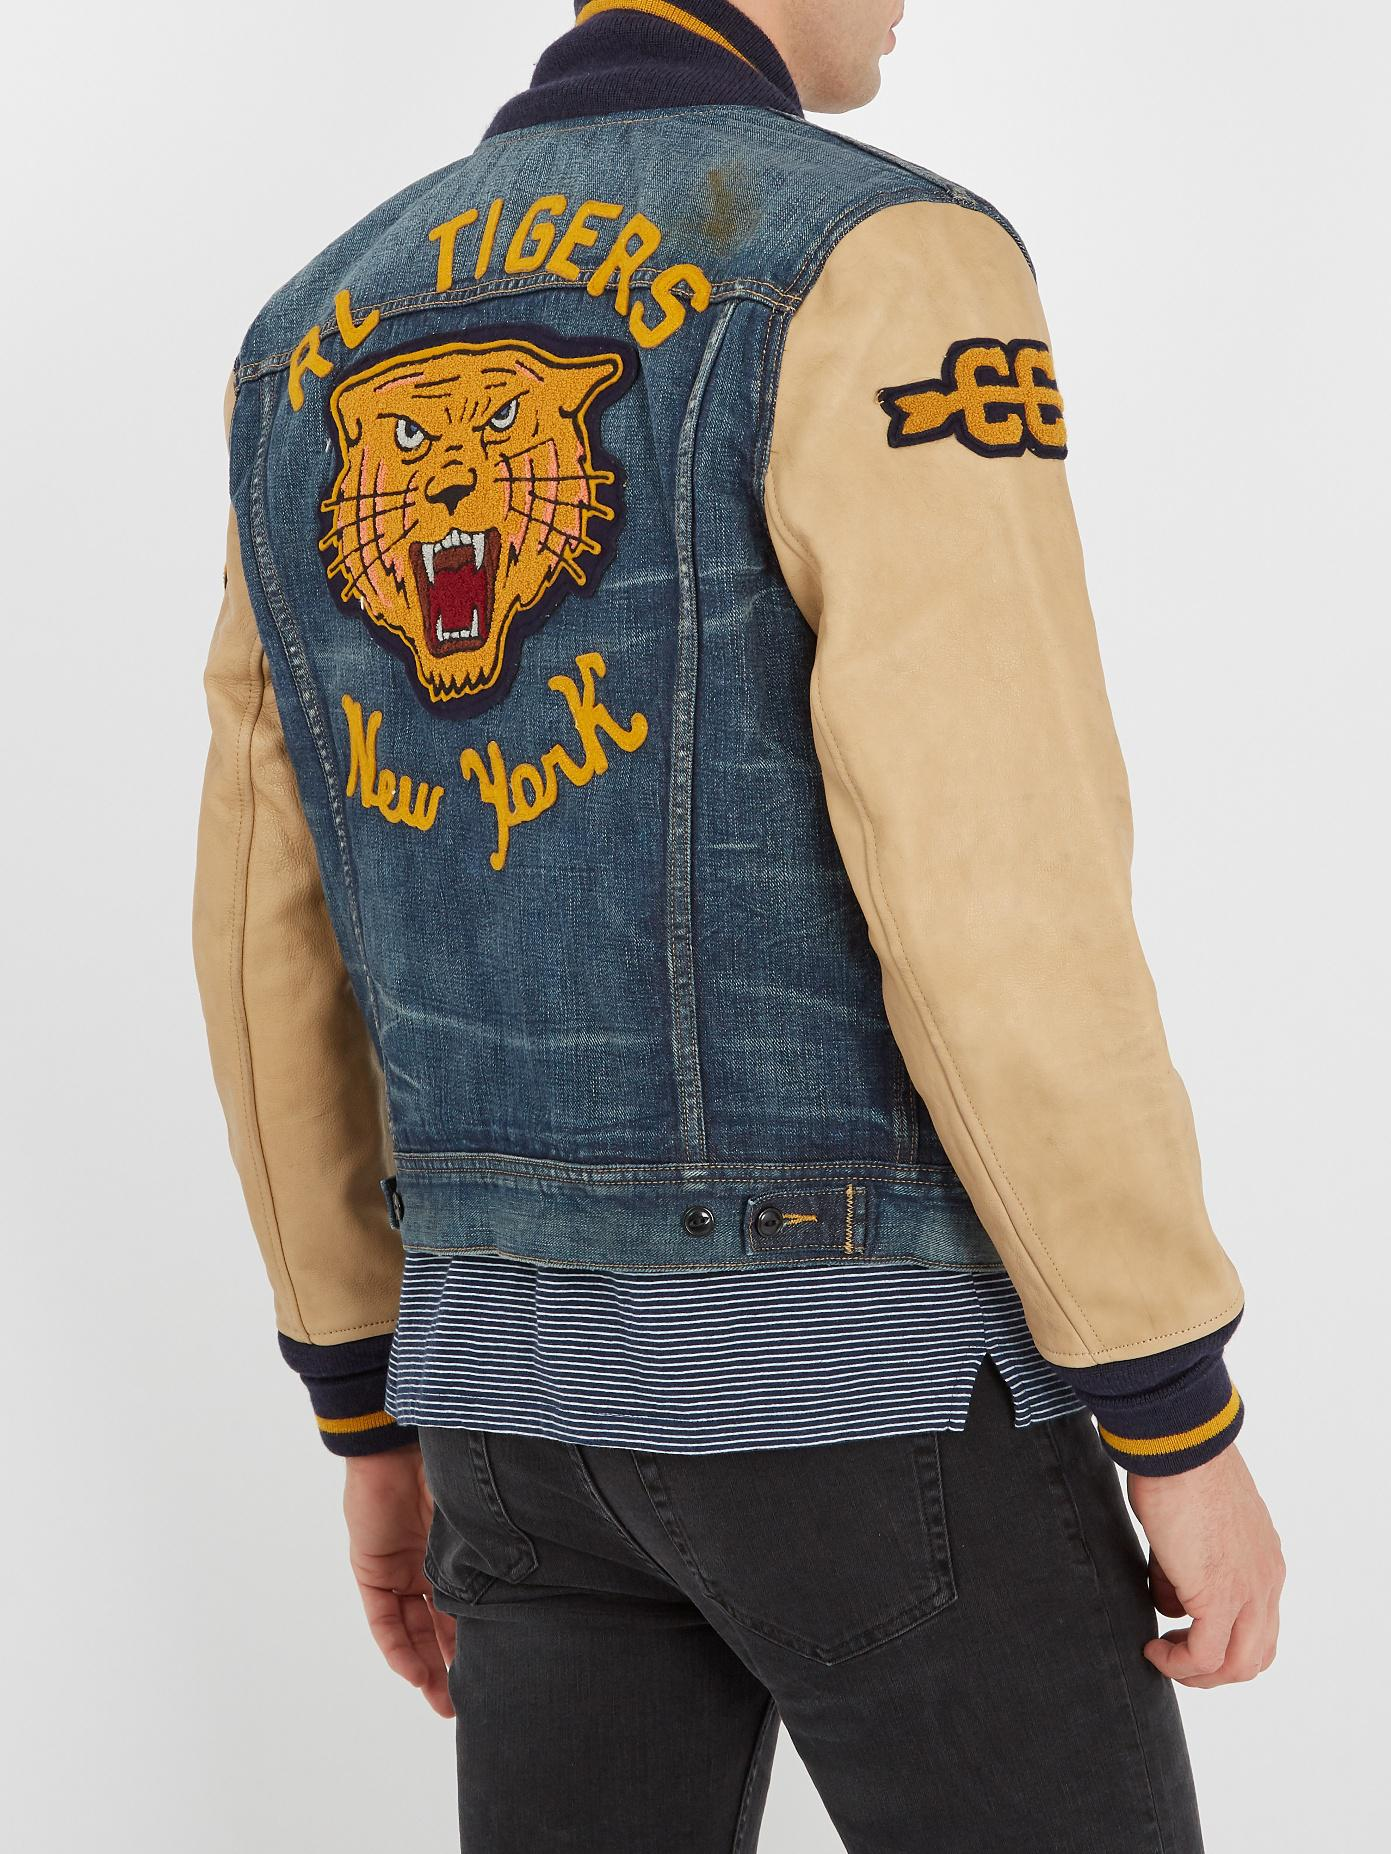 6276fd3f91f5 Lyst - Polo Ralph Lauren Leather-sleeved Denim Varsity Jacket in ...